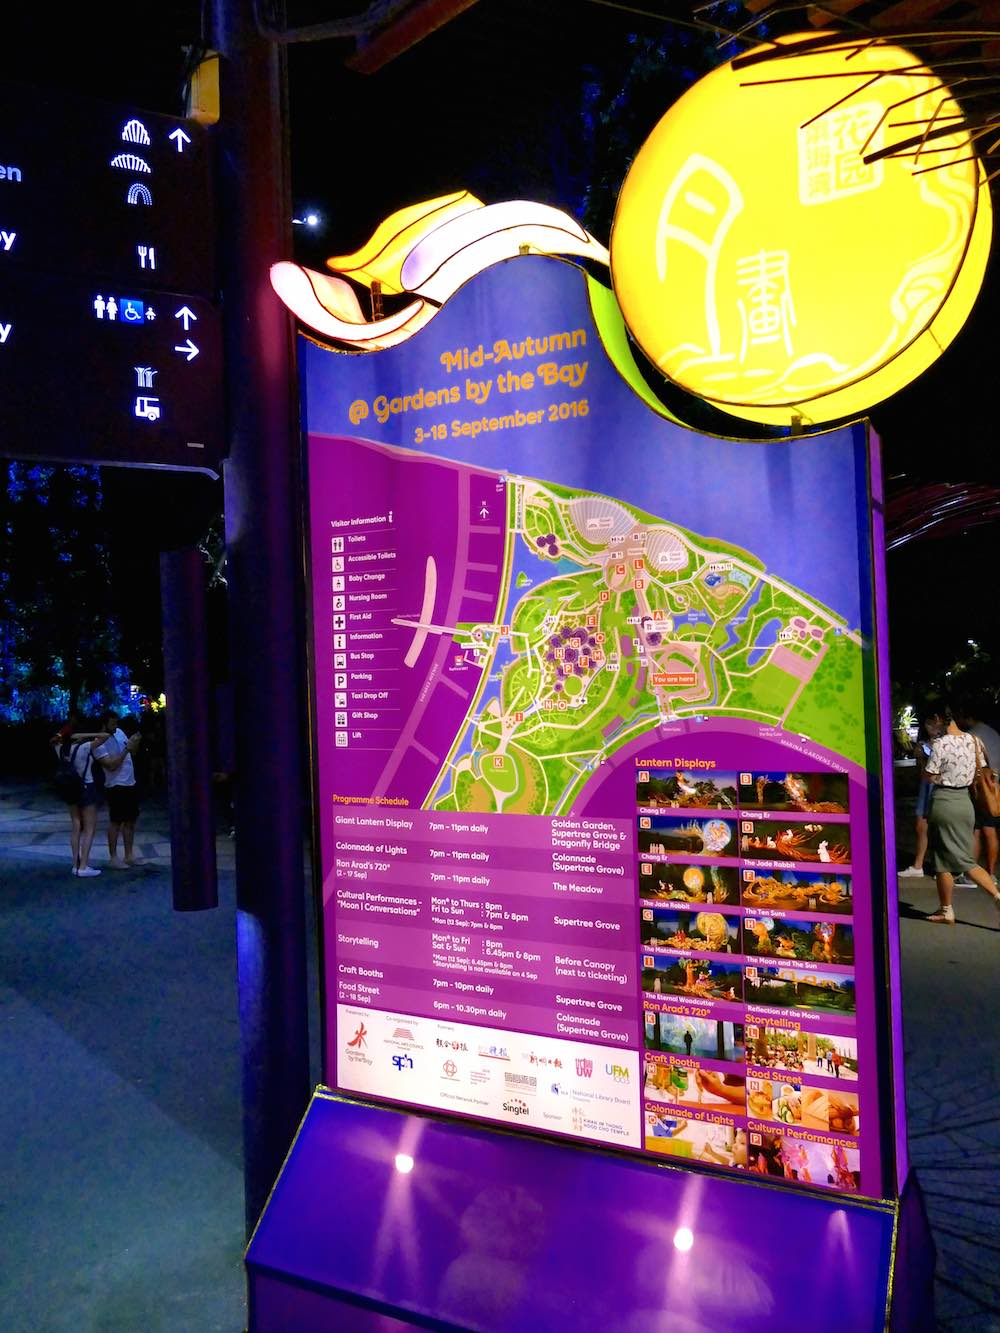 information about mid autumn festival at gardens by the bay curlytravellercom